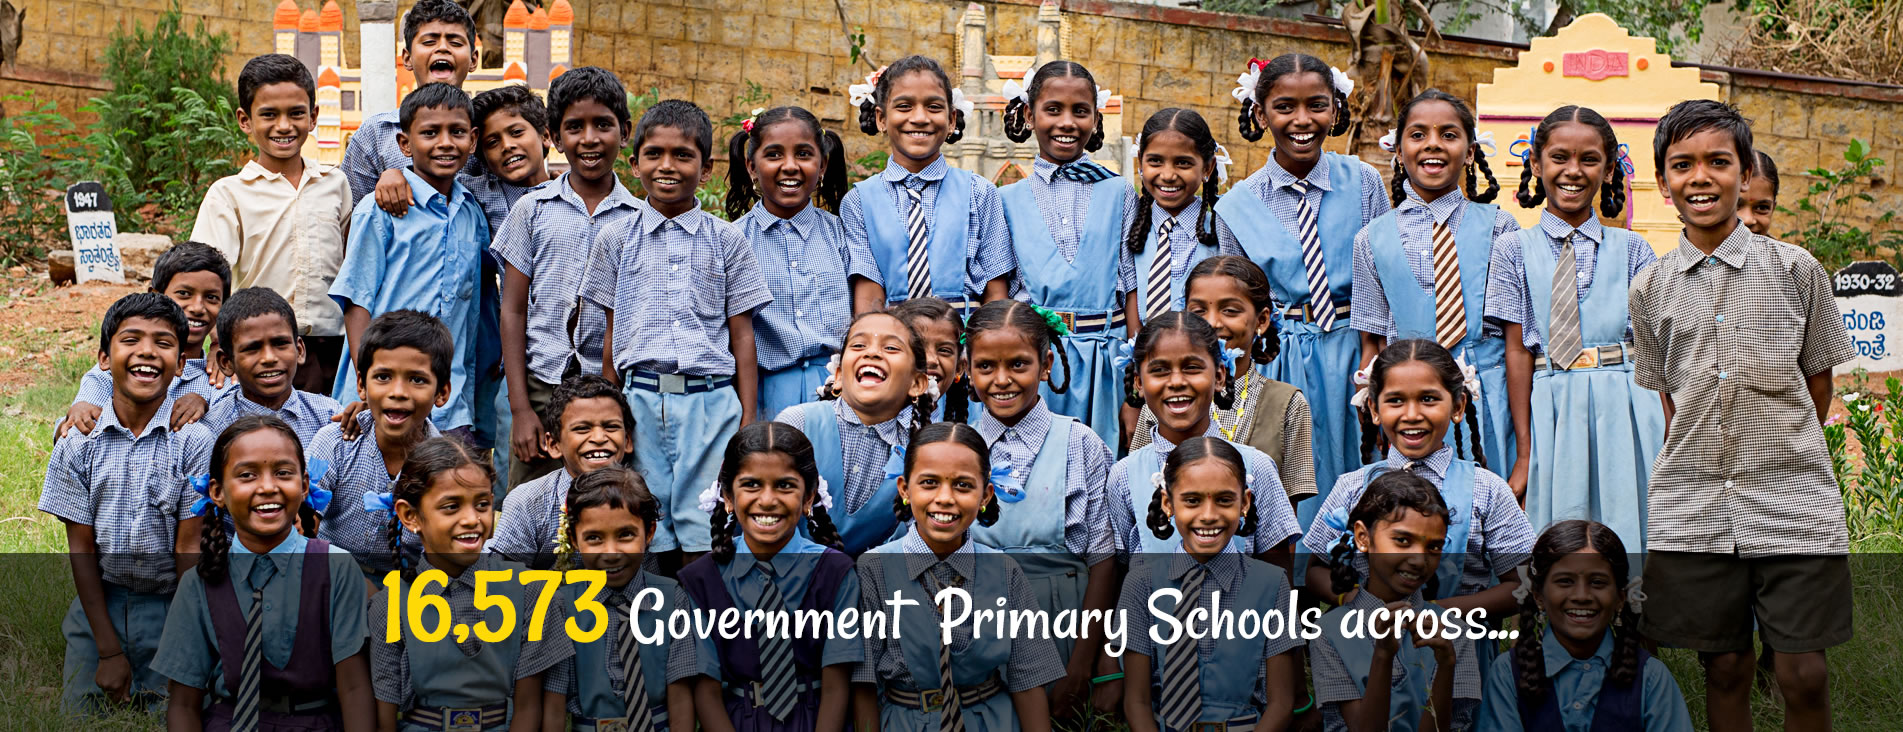 16,573 government primary schools across...